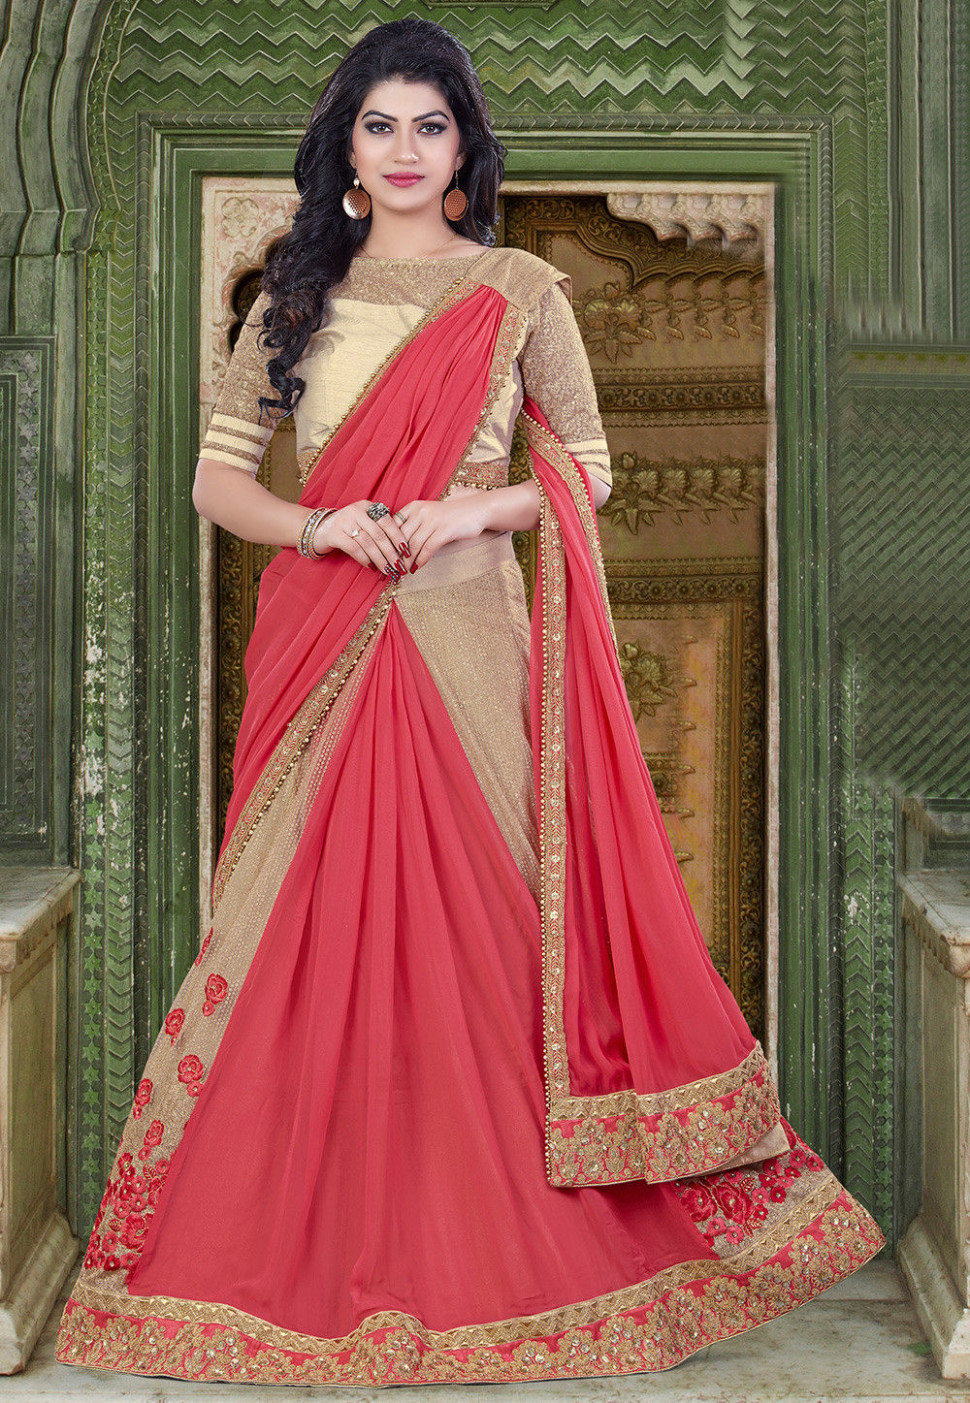 Embroidered Georgette Lehenga Style Saree in Pink and